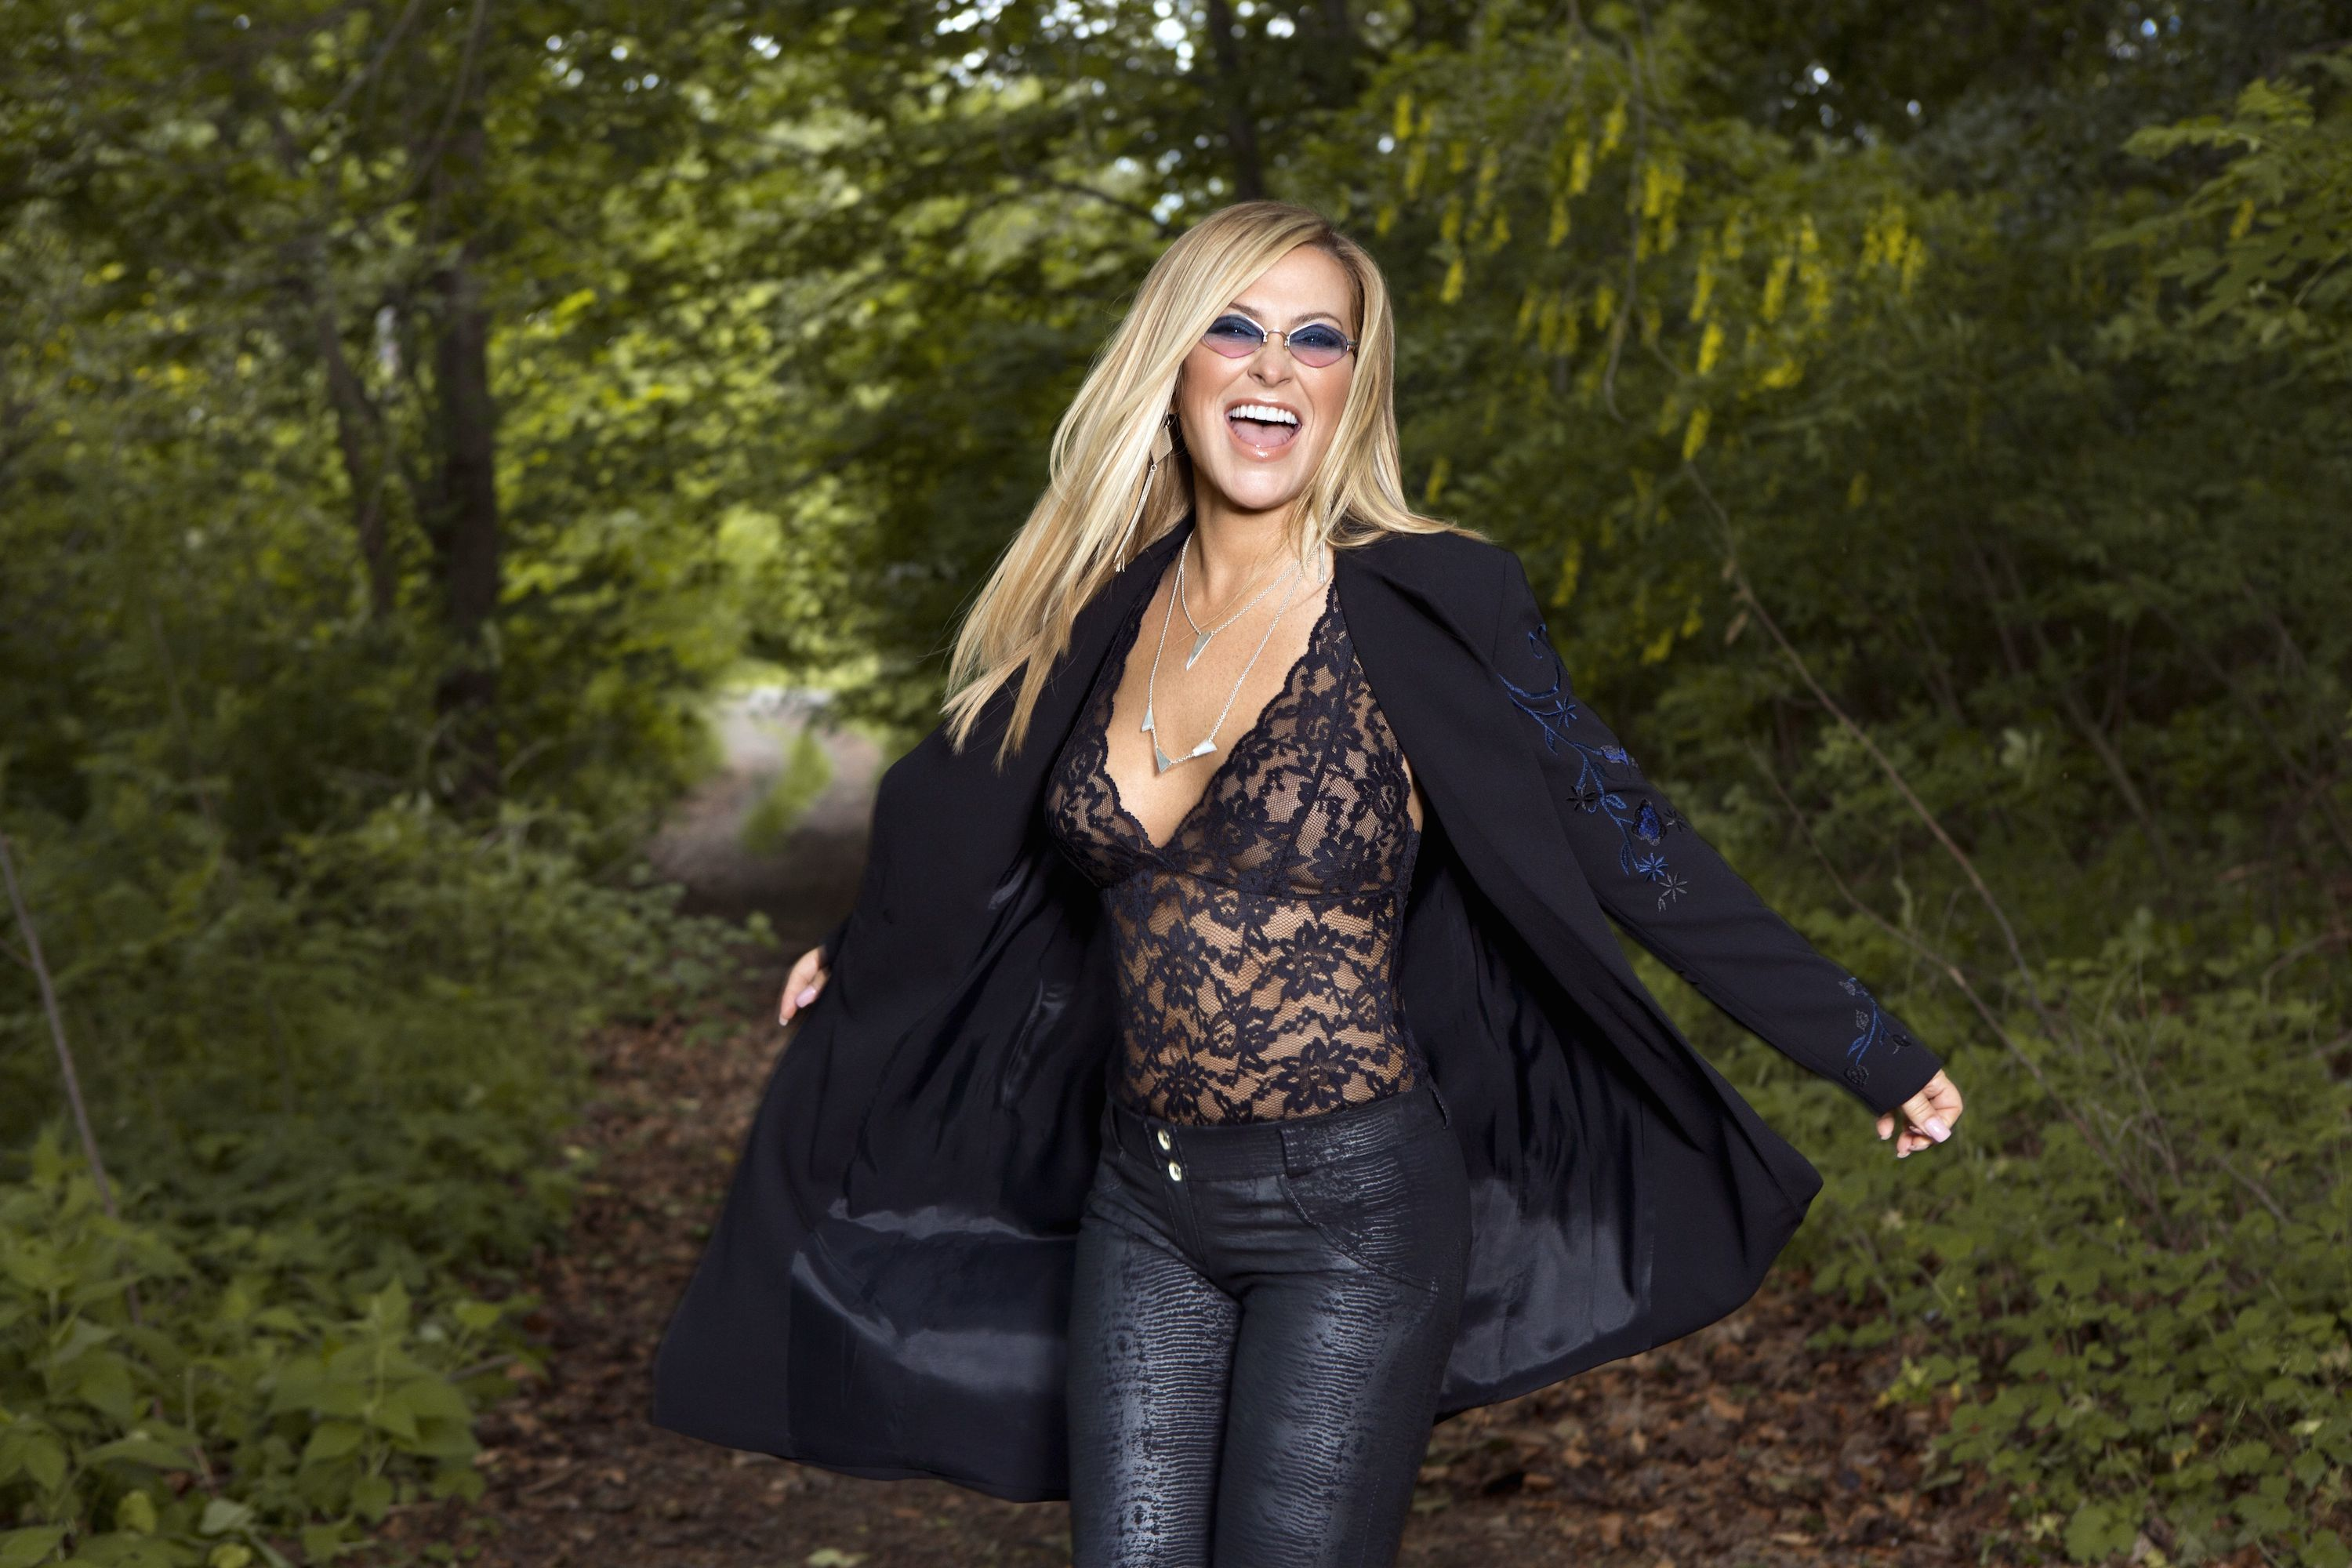 hertel single personals Who is she dating right now according to our records, isabell hertel is possibly single relationships isabell hertel has been in a relationship with holger franke about isabell hertel is a 44 year old german actress born on 9th august, 1973 in baden-baden, west germany her zodiac sign is leo.